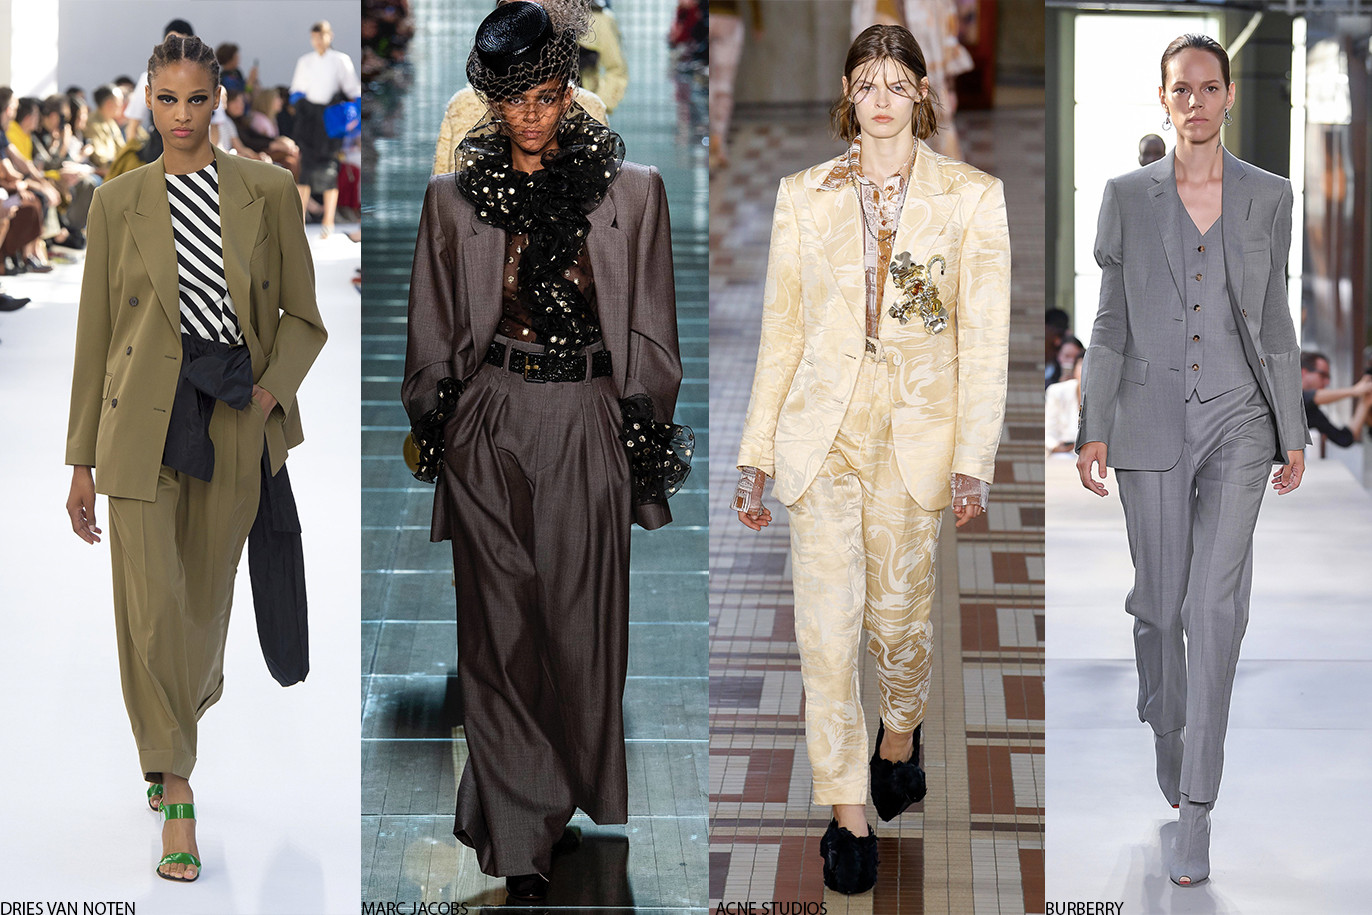 2019 Fashion Trends: Neon, Leopard, Suits & Nude Marc Jacobs Burberry JW Anderson Gucci Dior Acne Studios Marc Jacobs DriesVan Noten Chanel